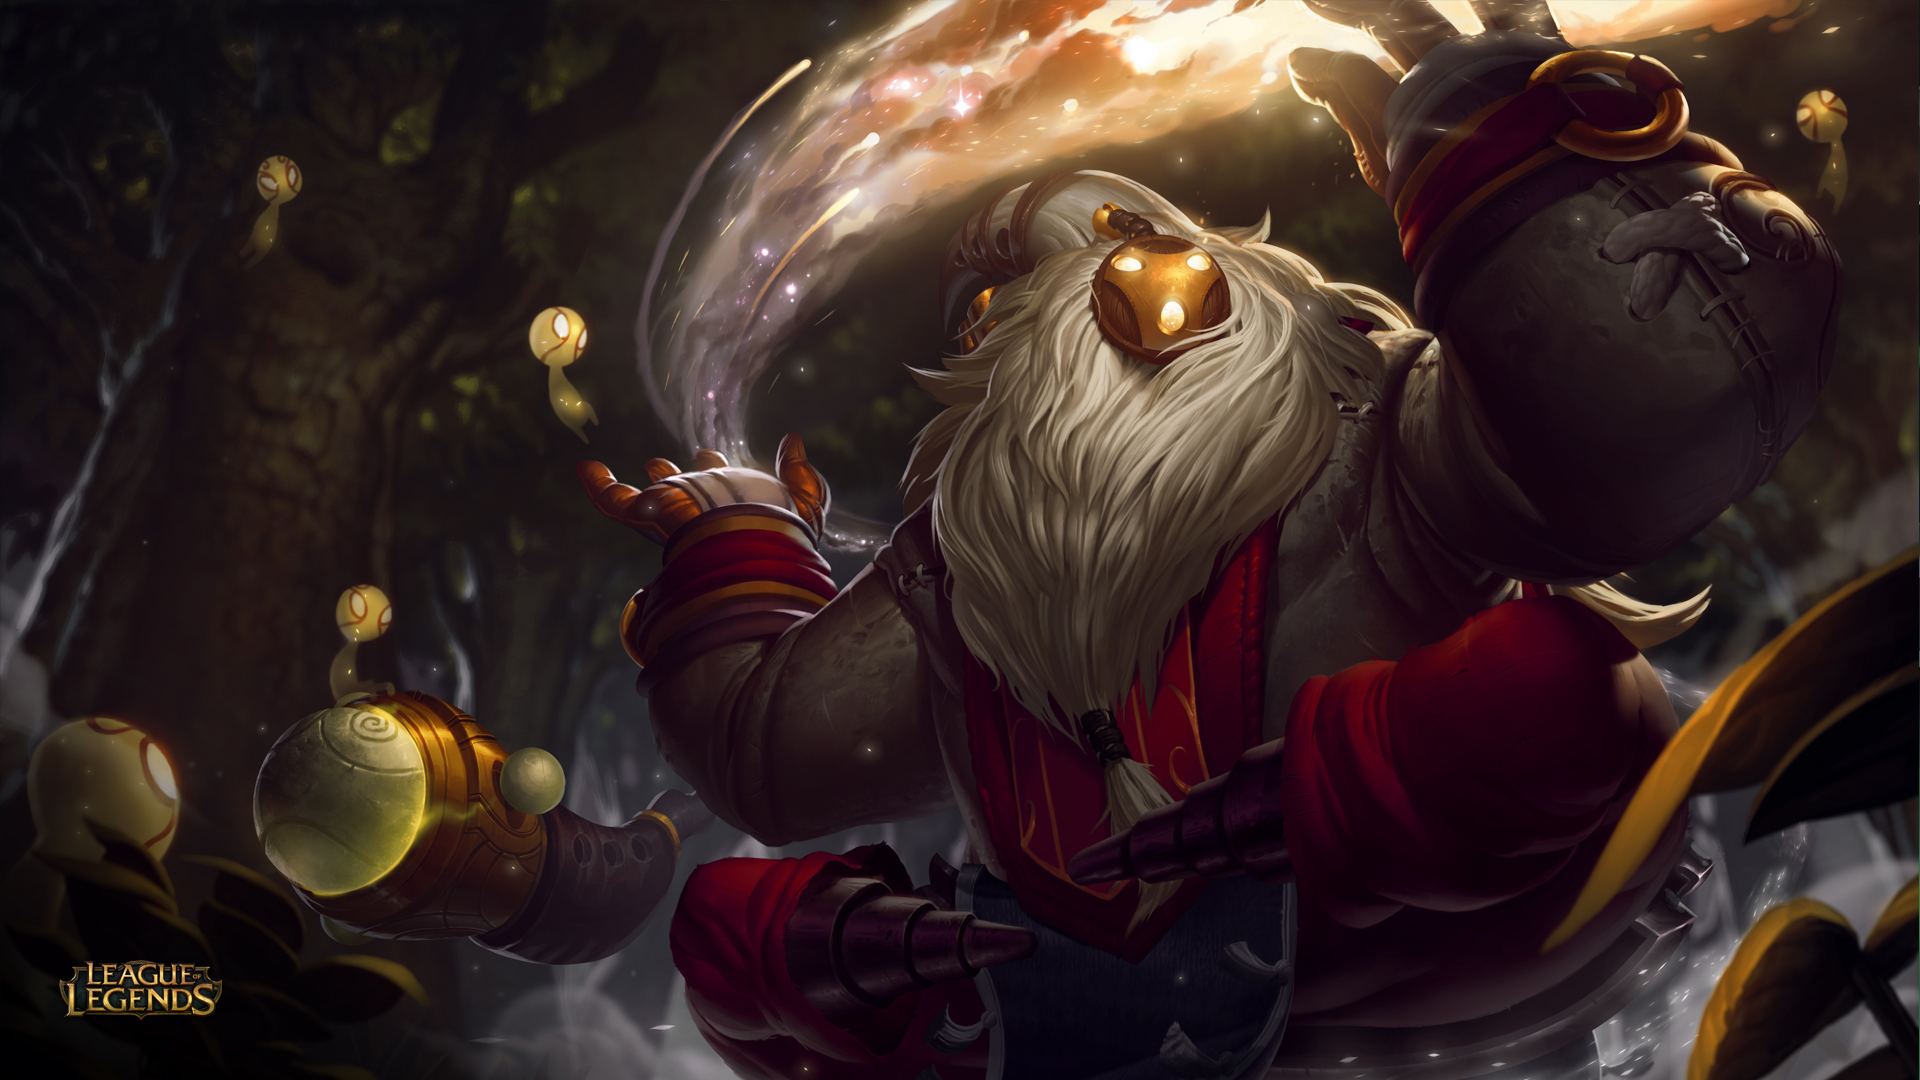 Bard the Wandering Caretaker (guide, build) - новый чемпион в League of Legends